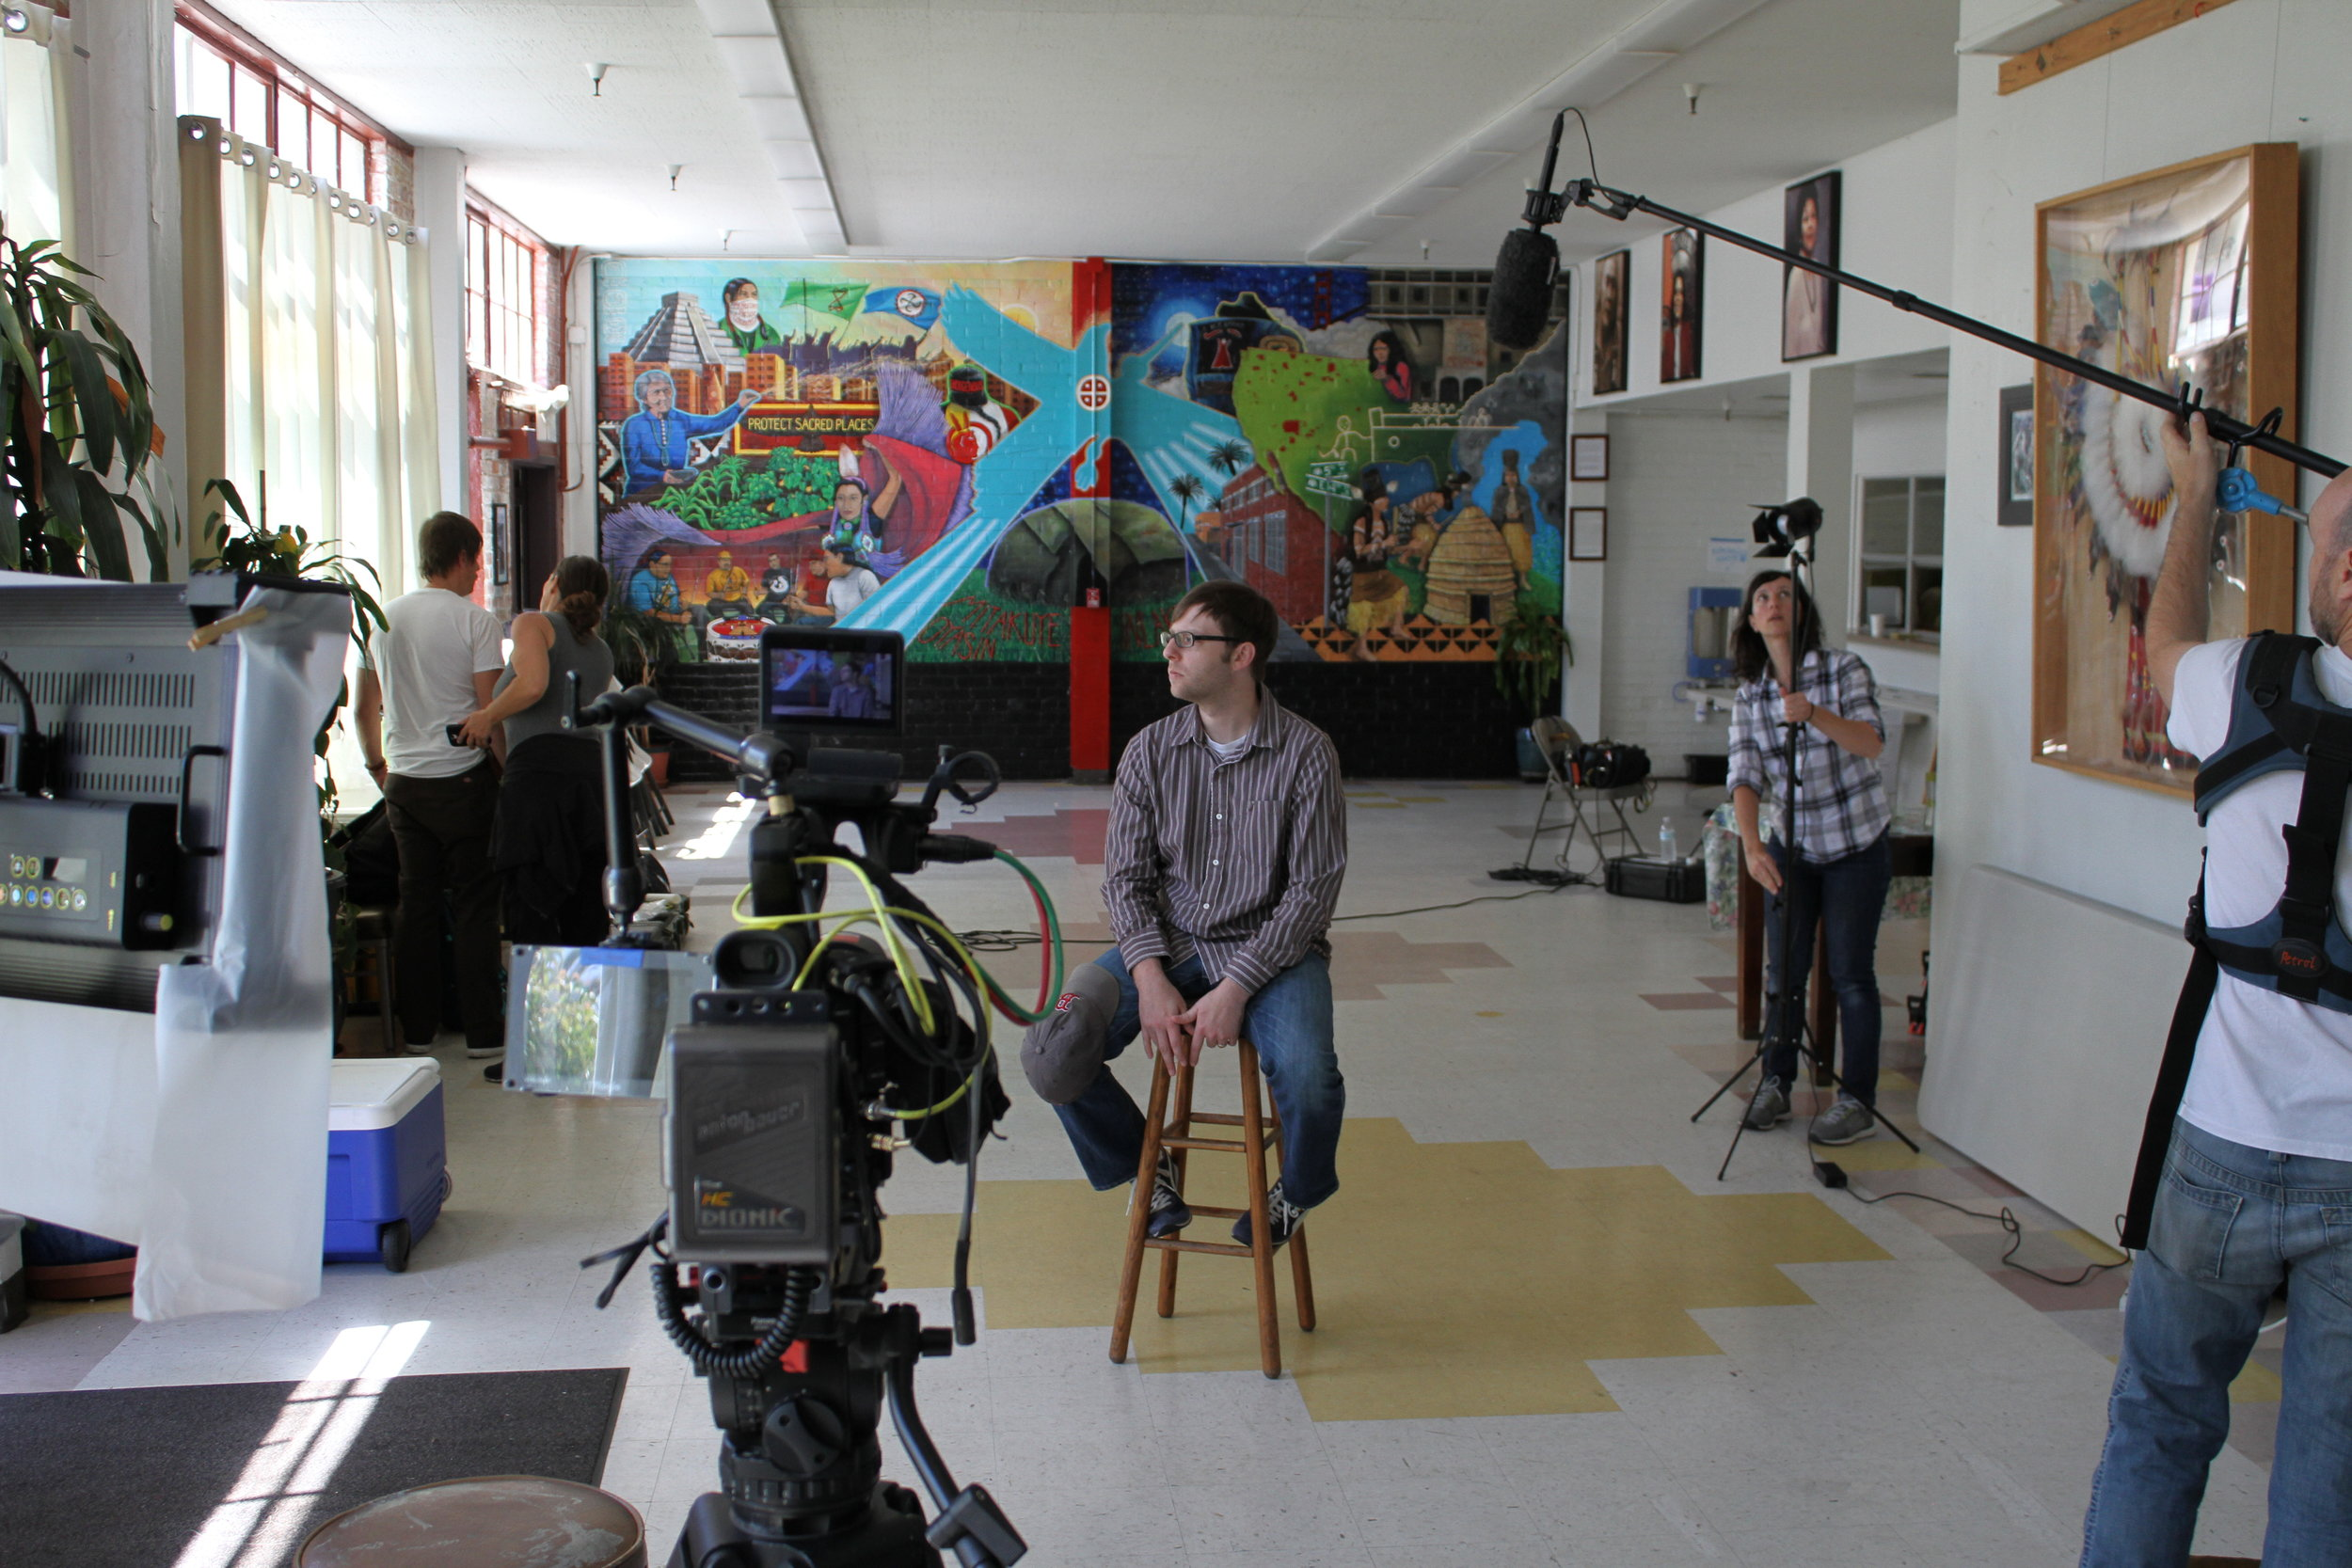 On location at the Intertribal Friendship House in Oakland, CA the Mankiller crew sets up the shot for Mary Smith's interview